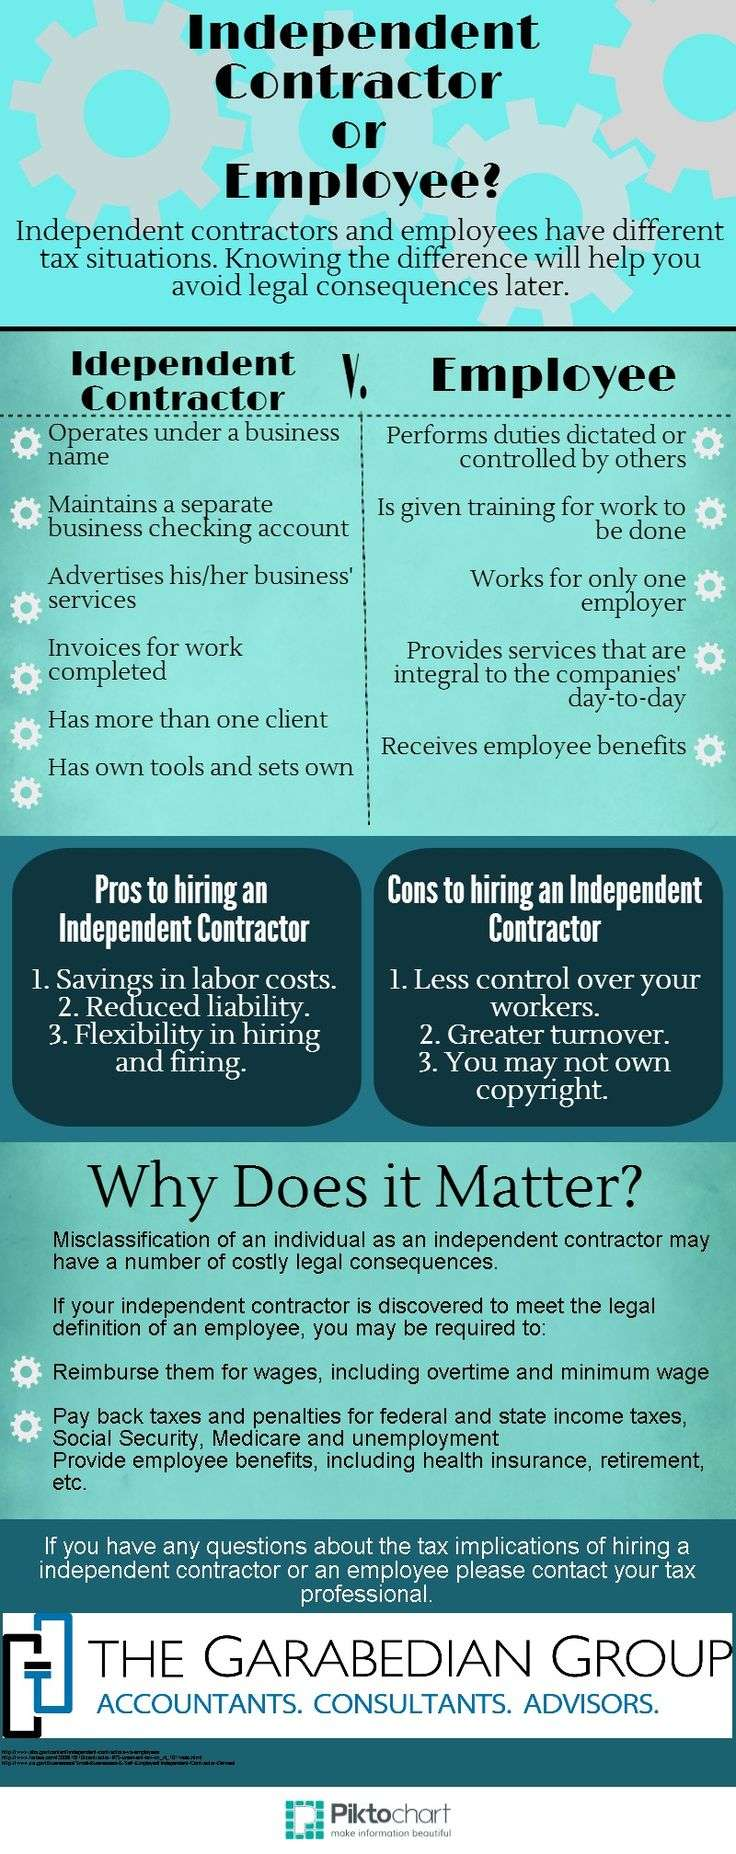 Independent Contractor or Employee? Why Does it Matter?